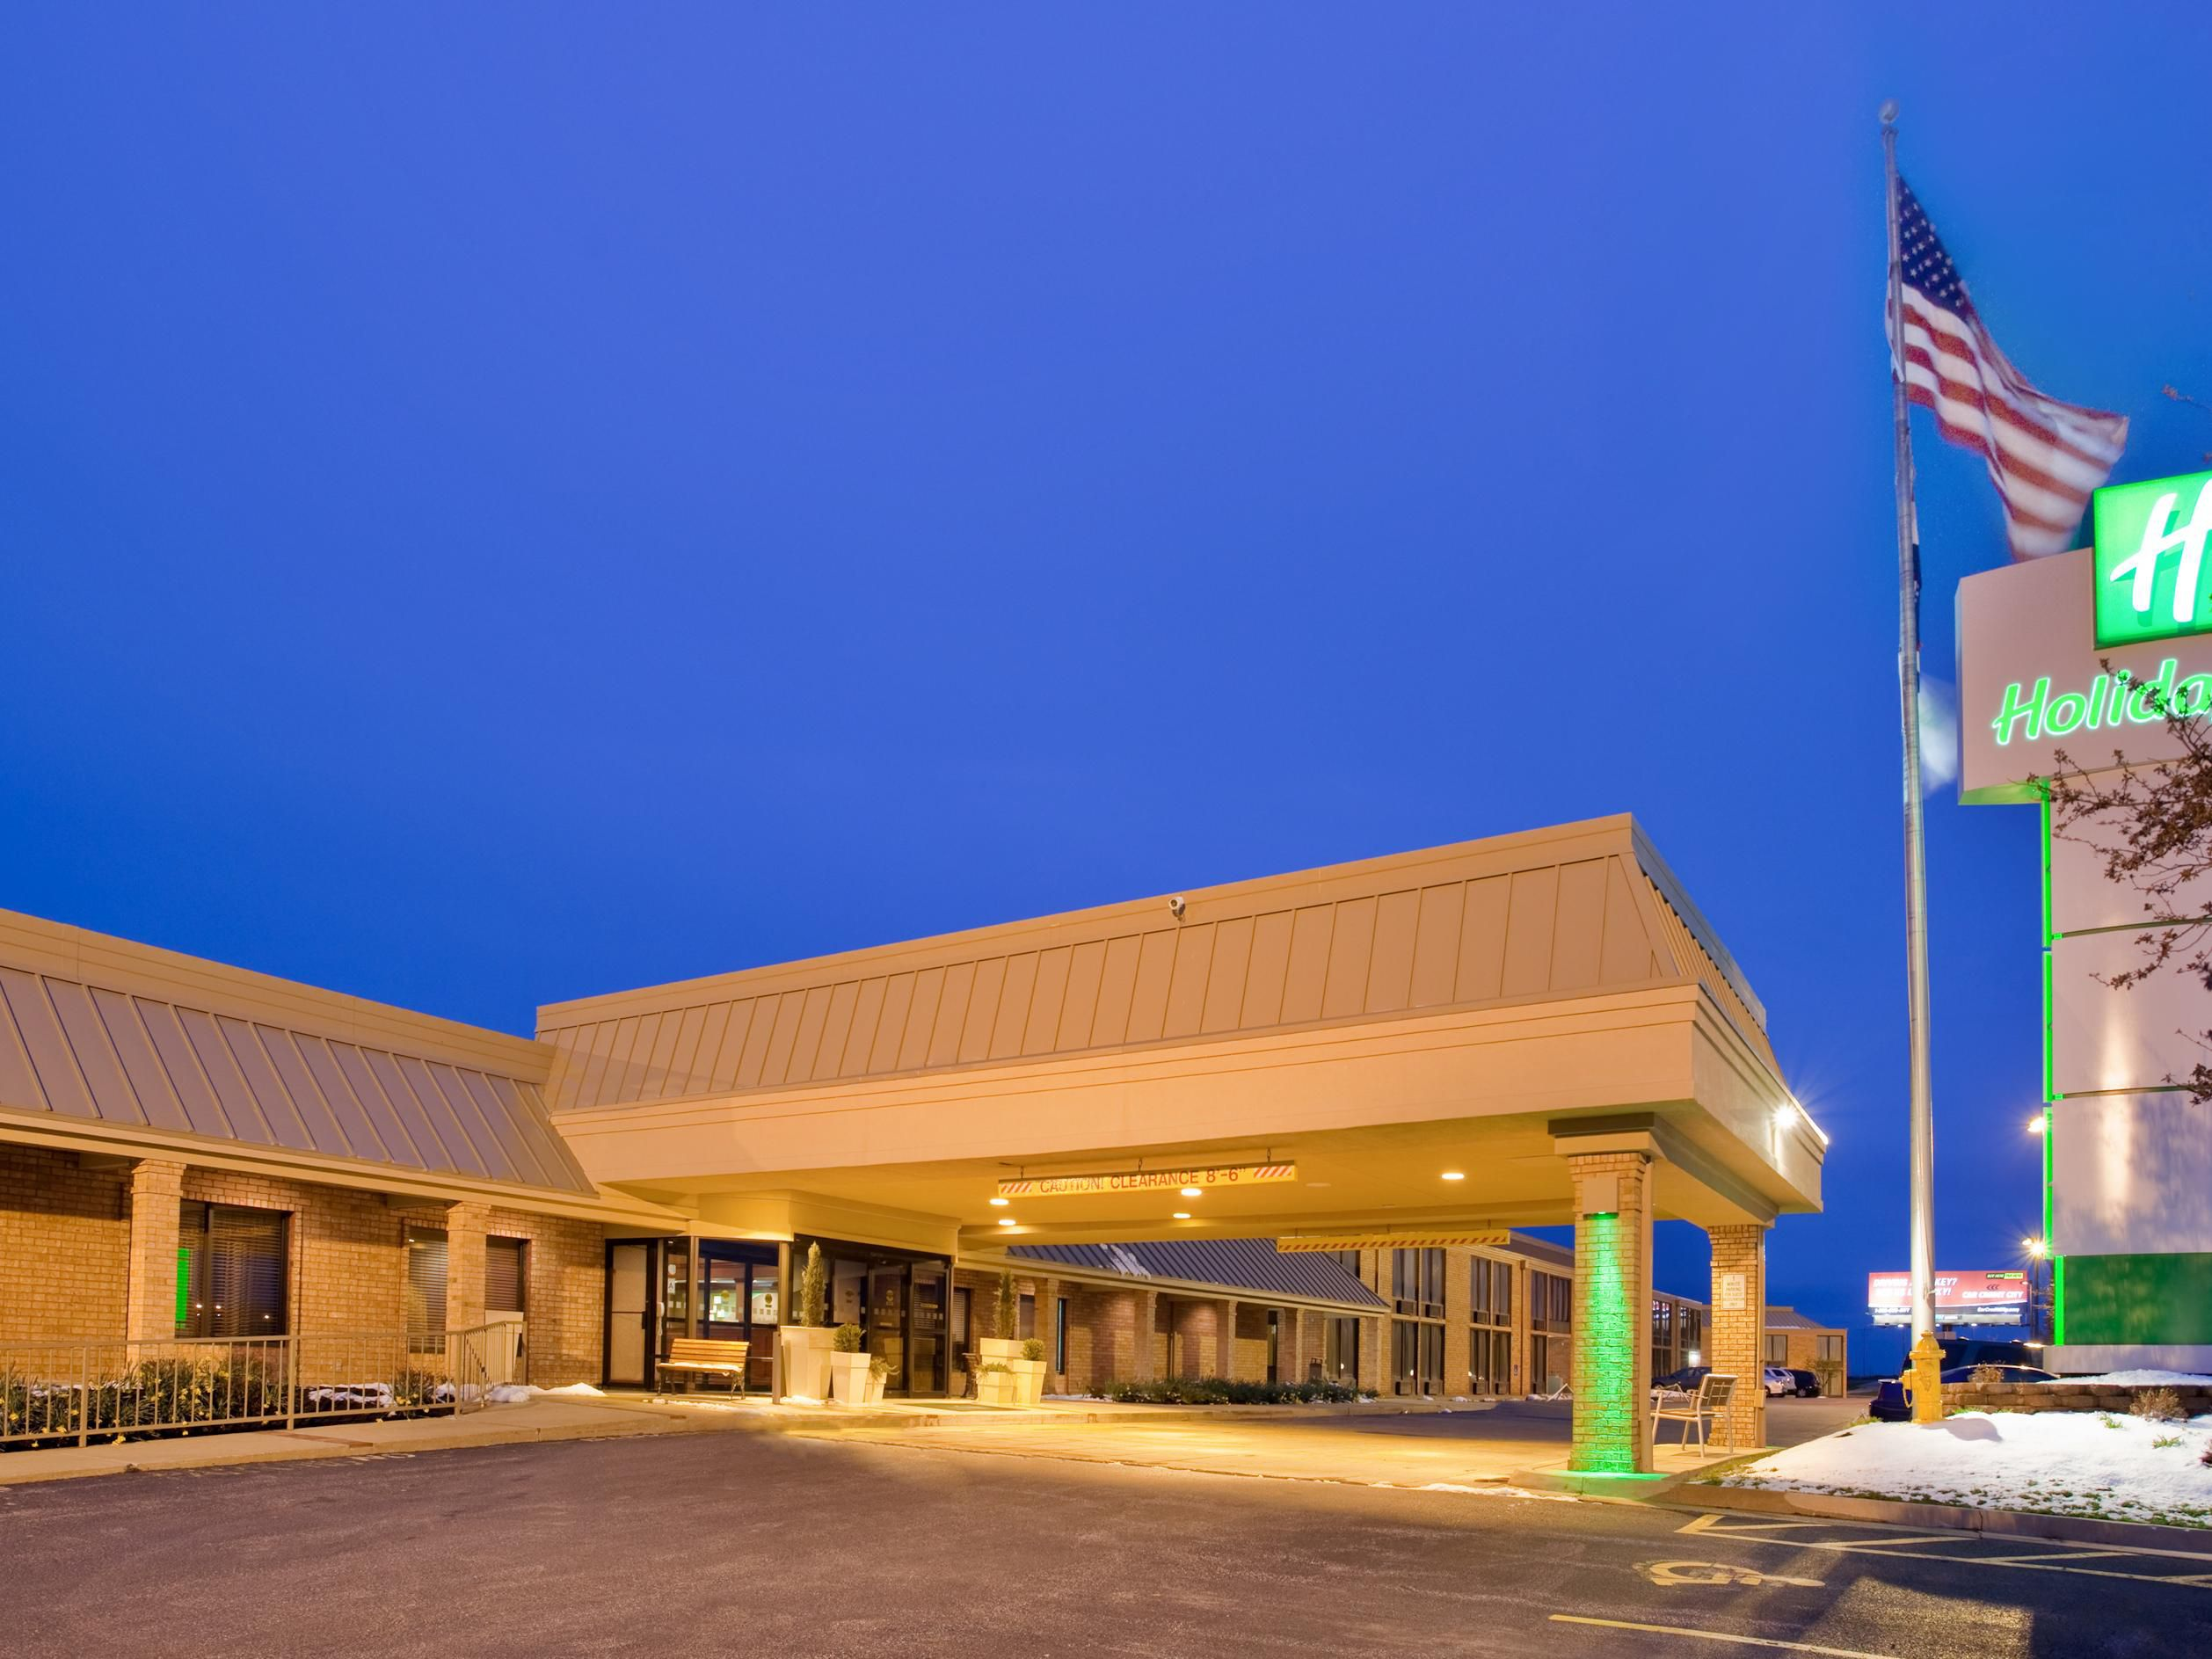 Relax at the beautiful Holiday Inn South!